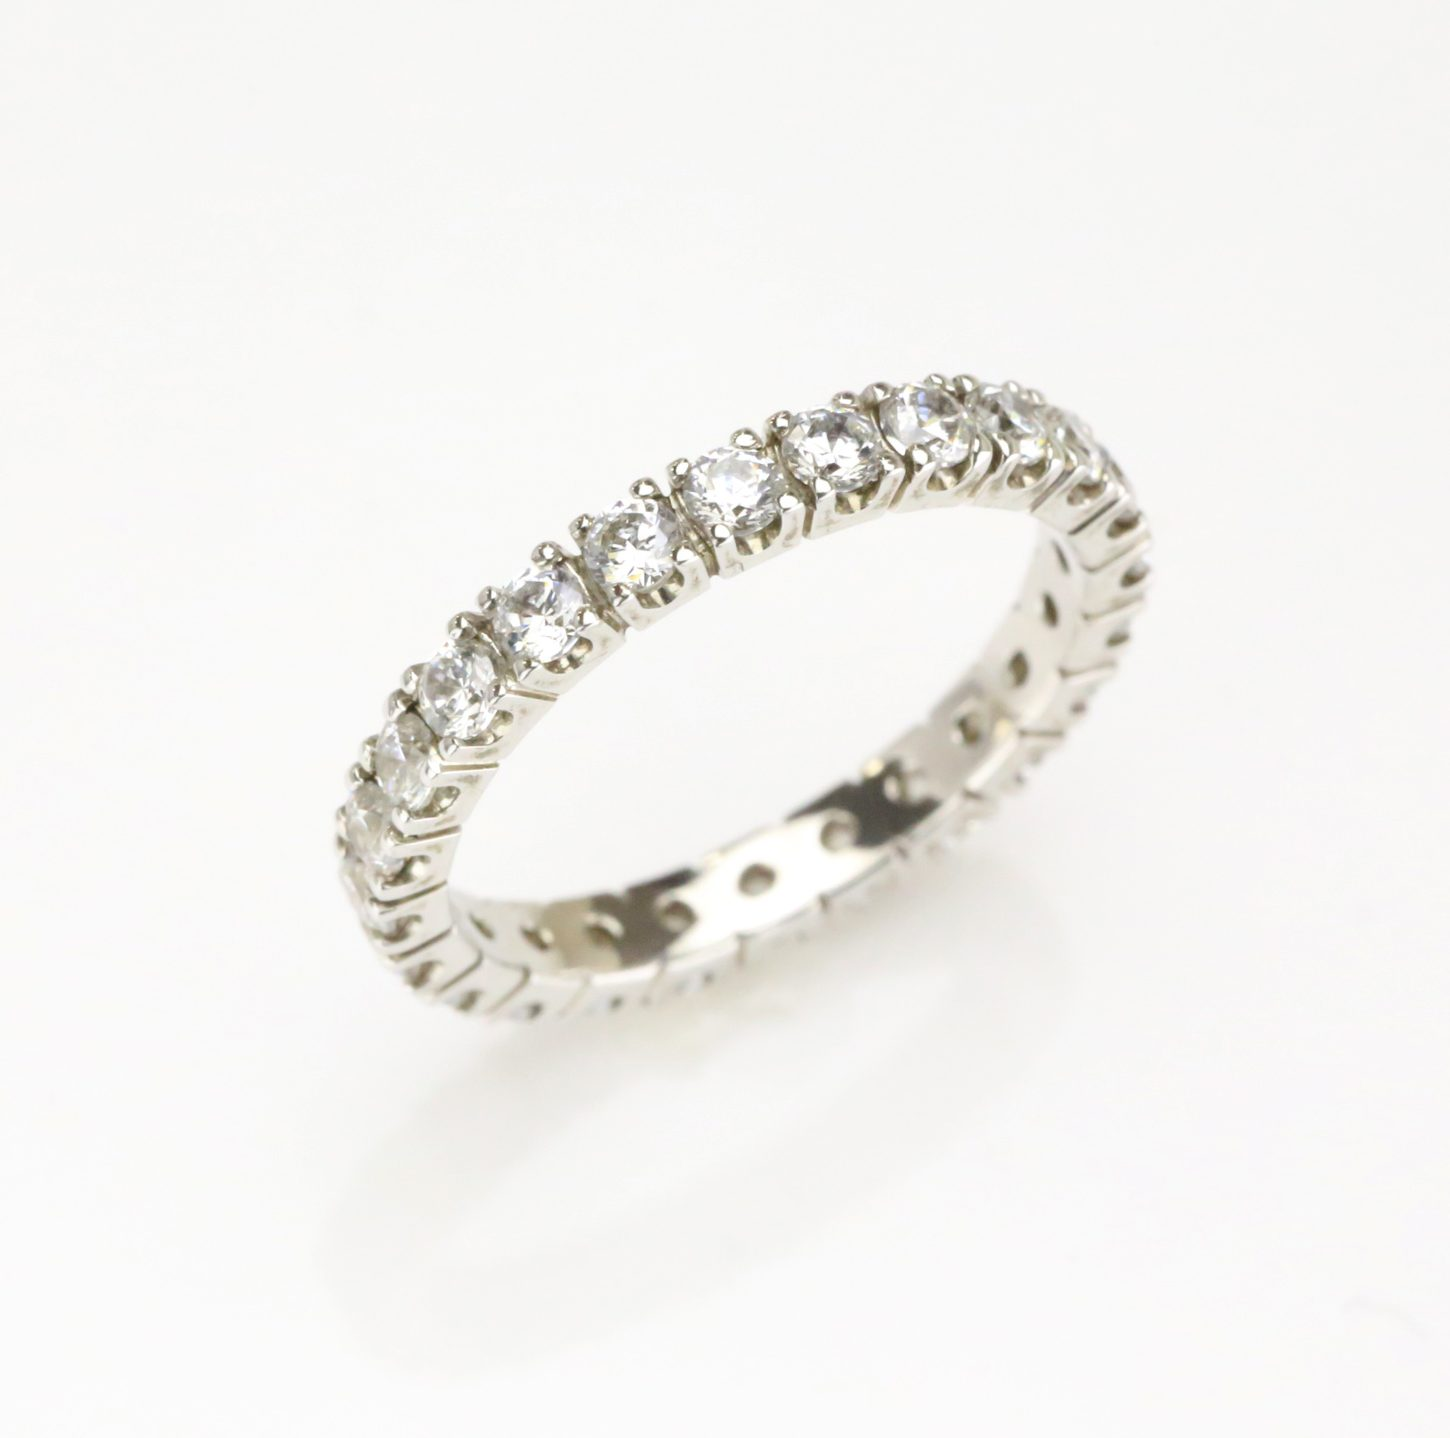 MARRIAGE RING 11